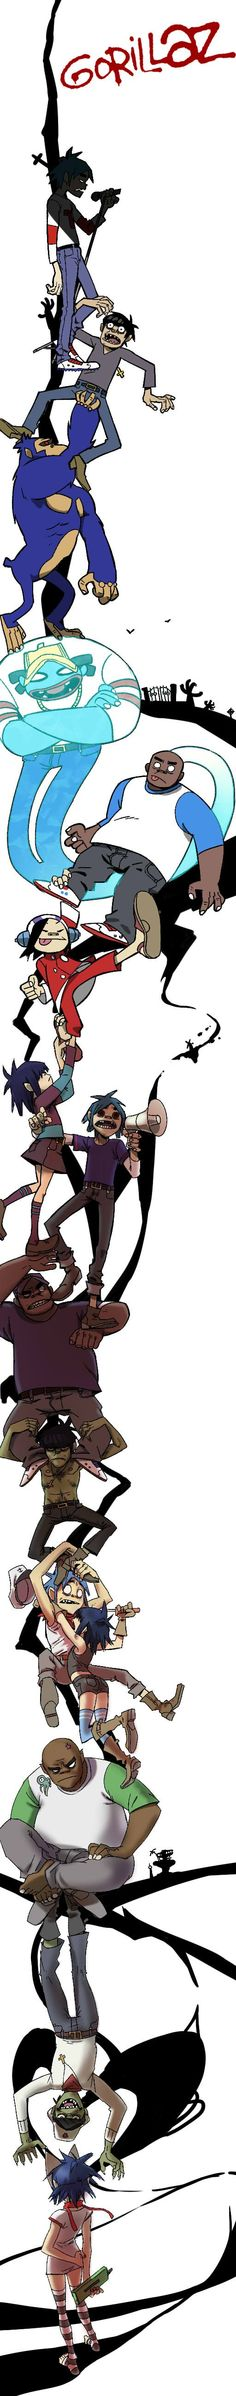 Gorillaz - this is so awesome just love love love :3: